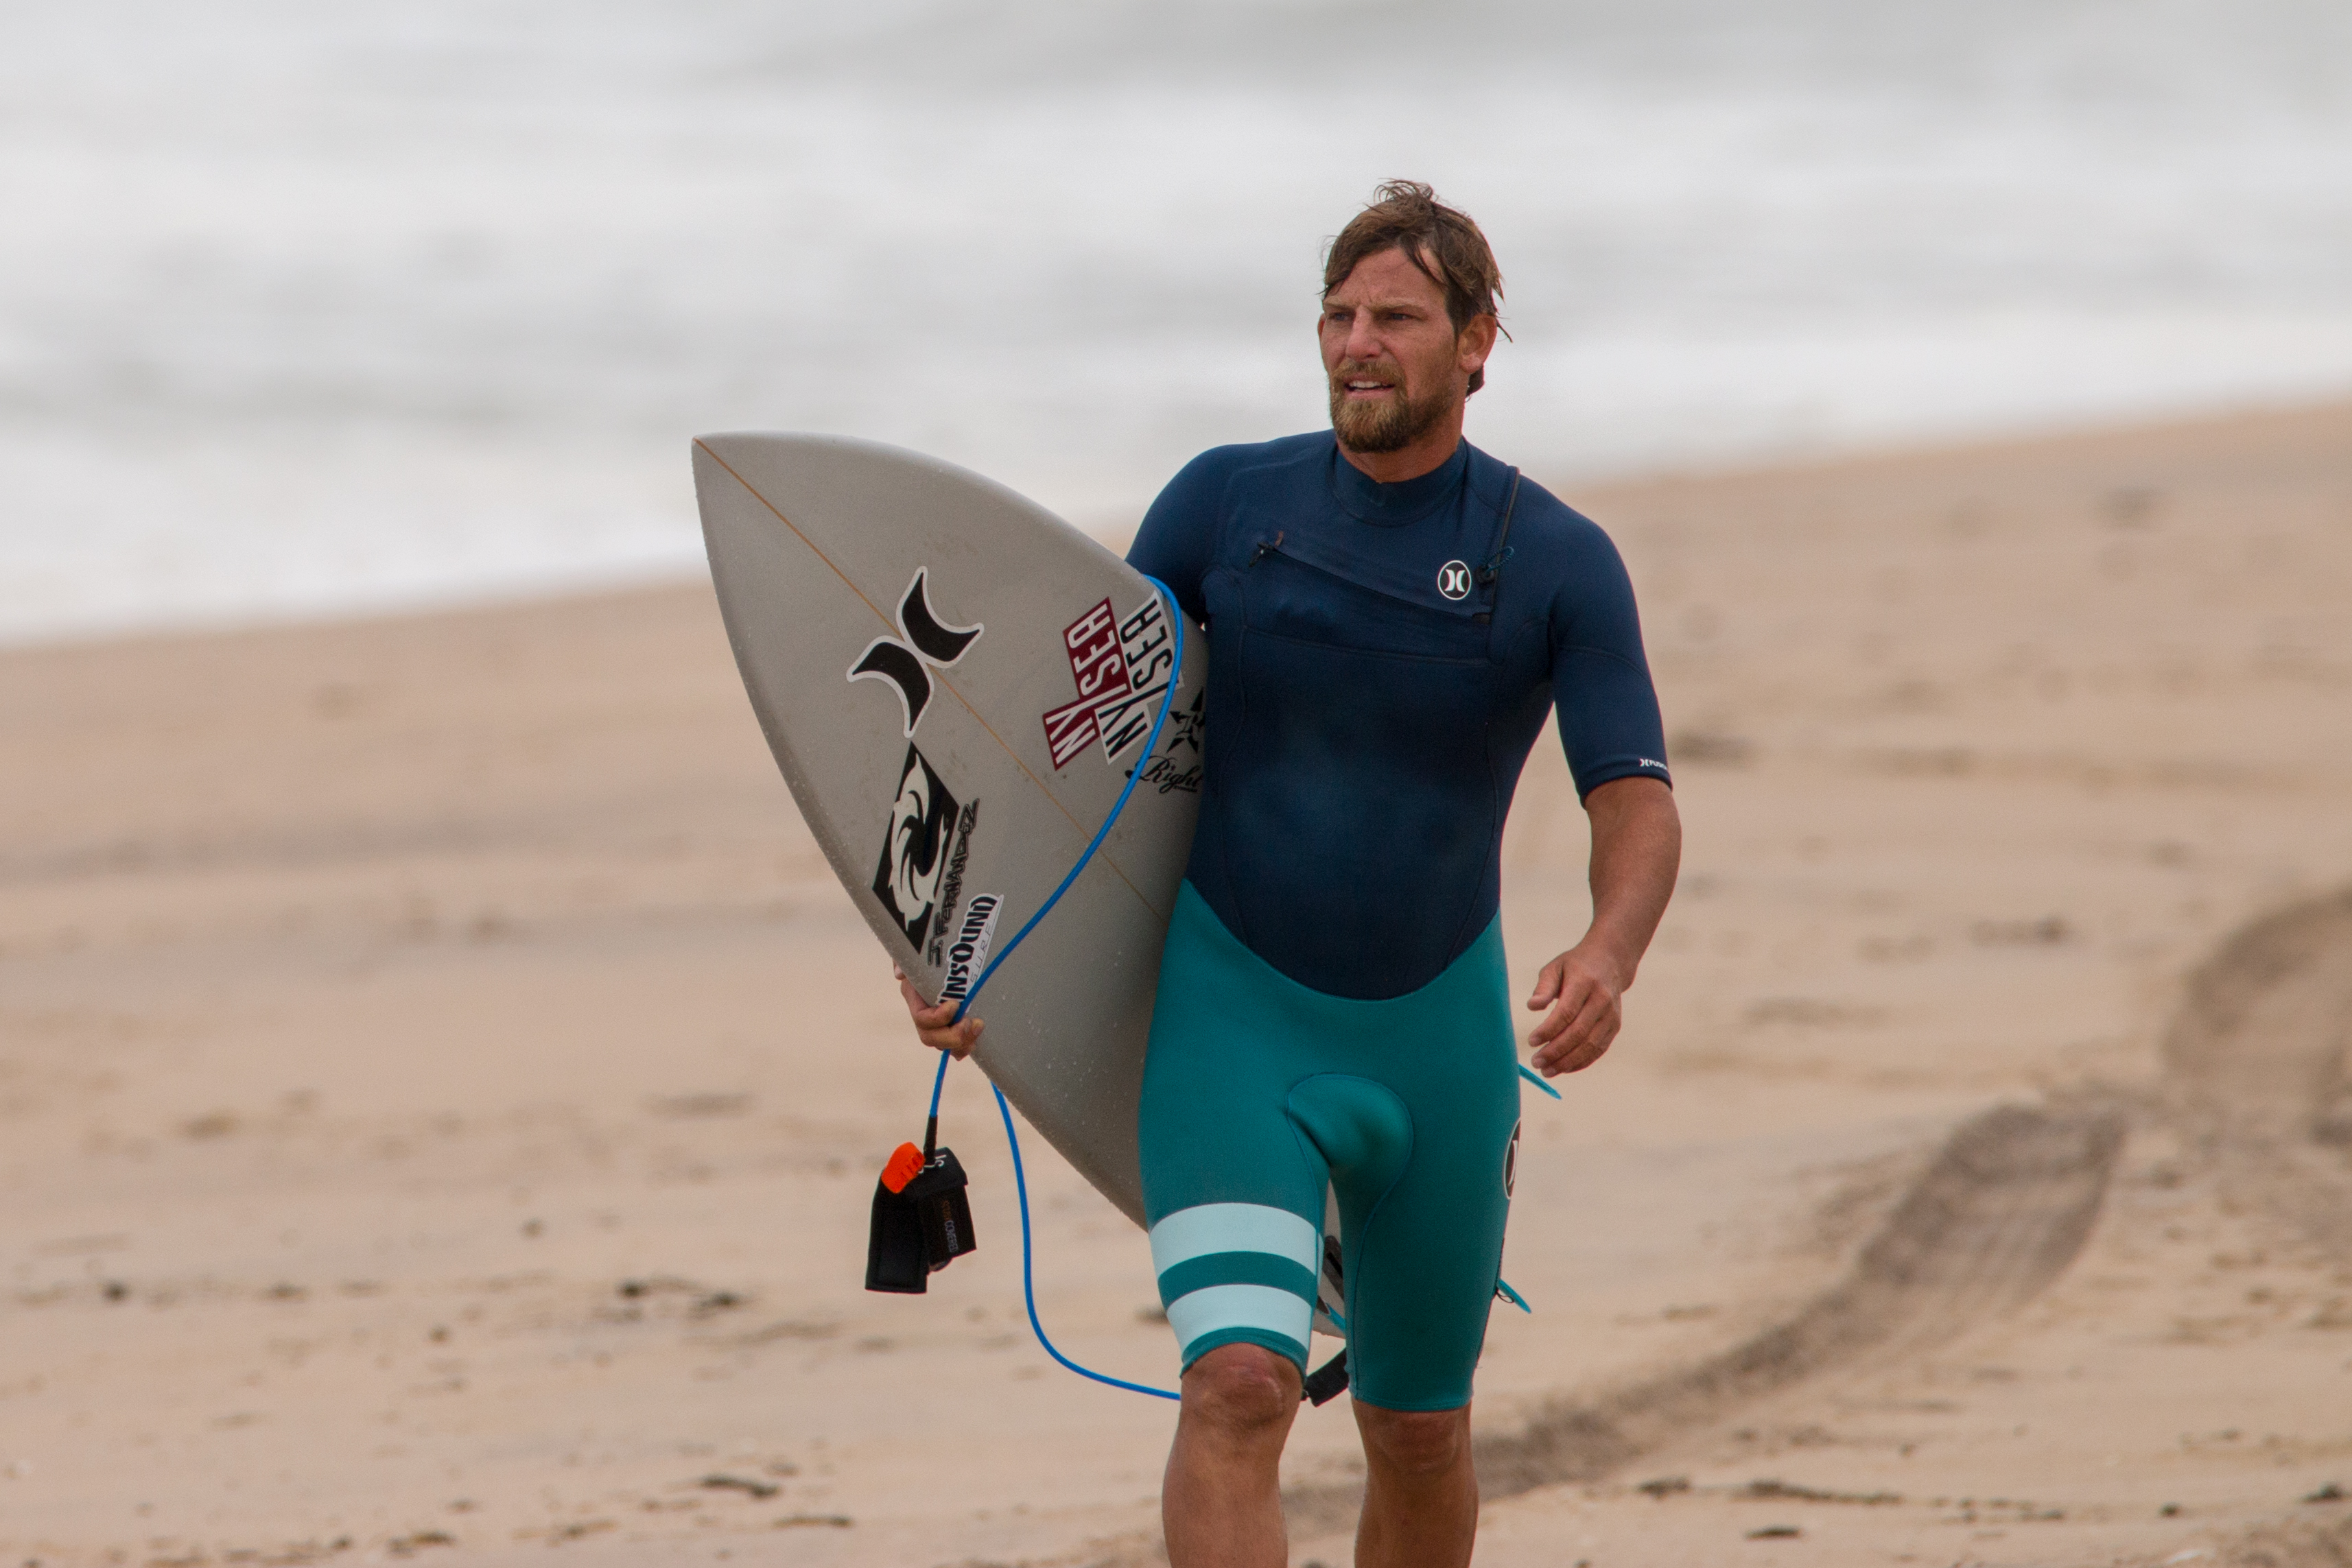 2:00-3:00 - Group Surf Lesson - With Professional Big Wave Surfer Will Skudin